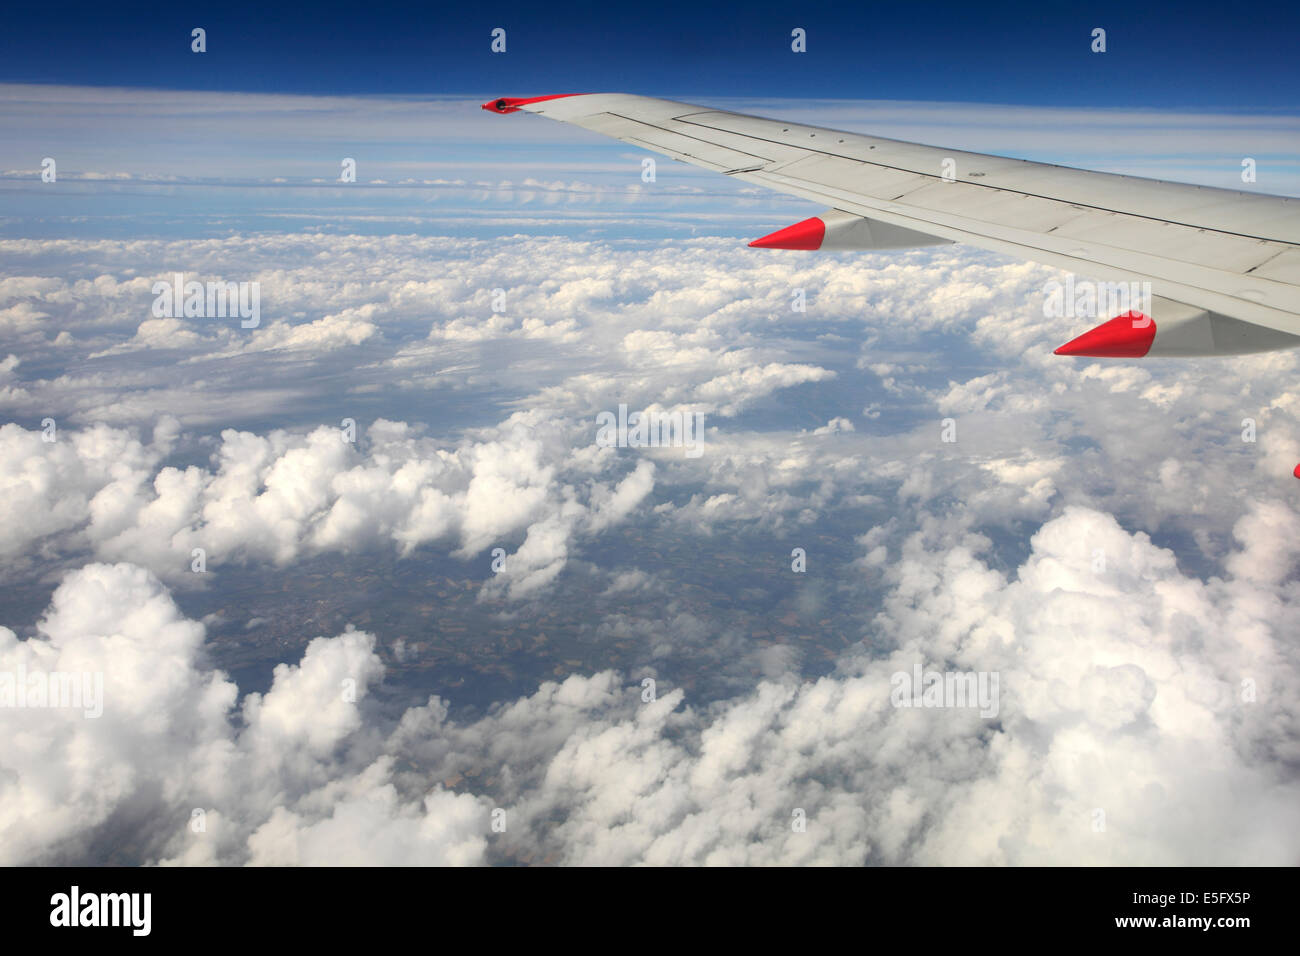 View from aeroplane window of Cumulus congestus clouds. - Stock Image